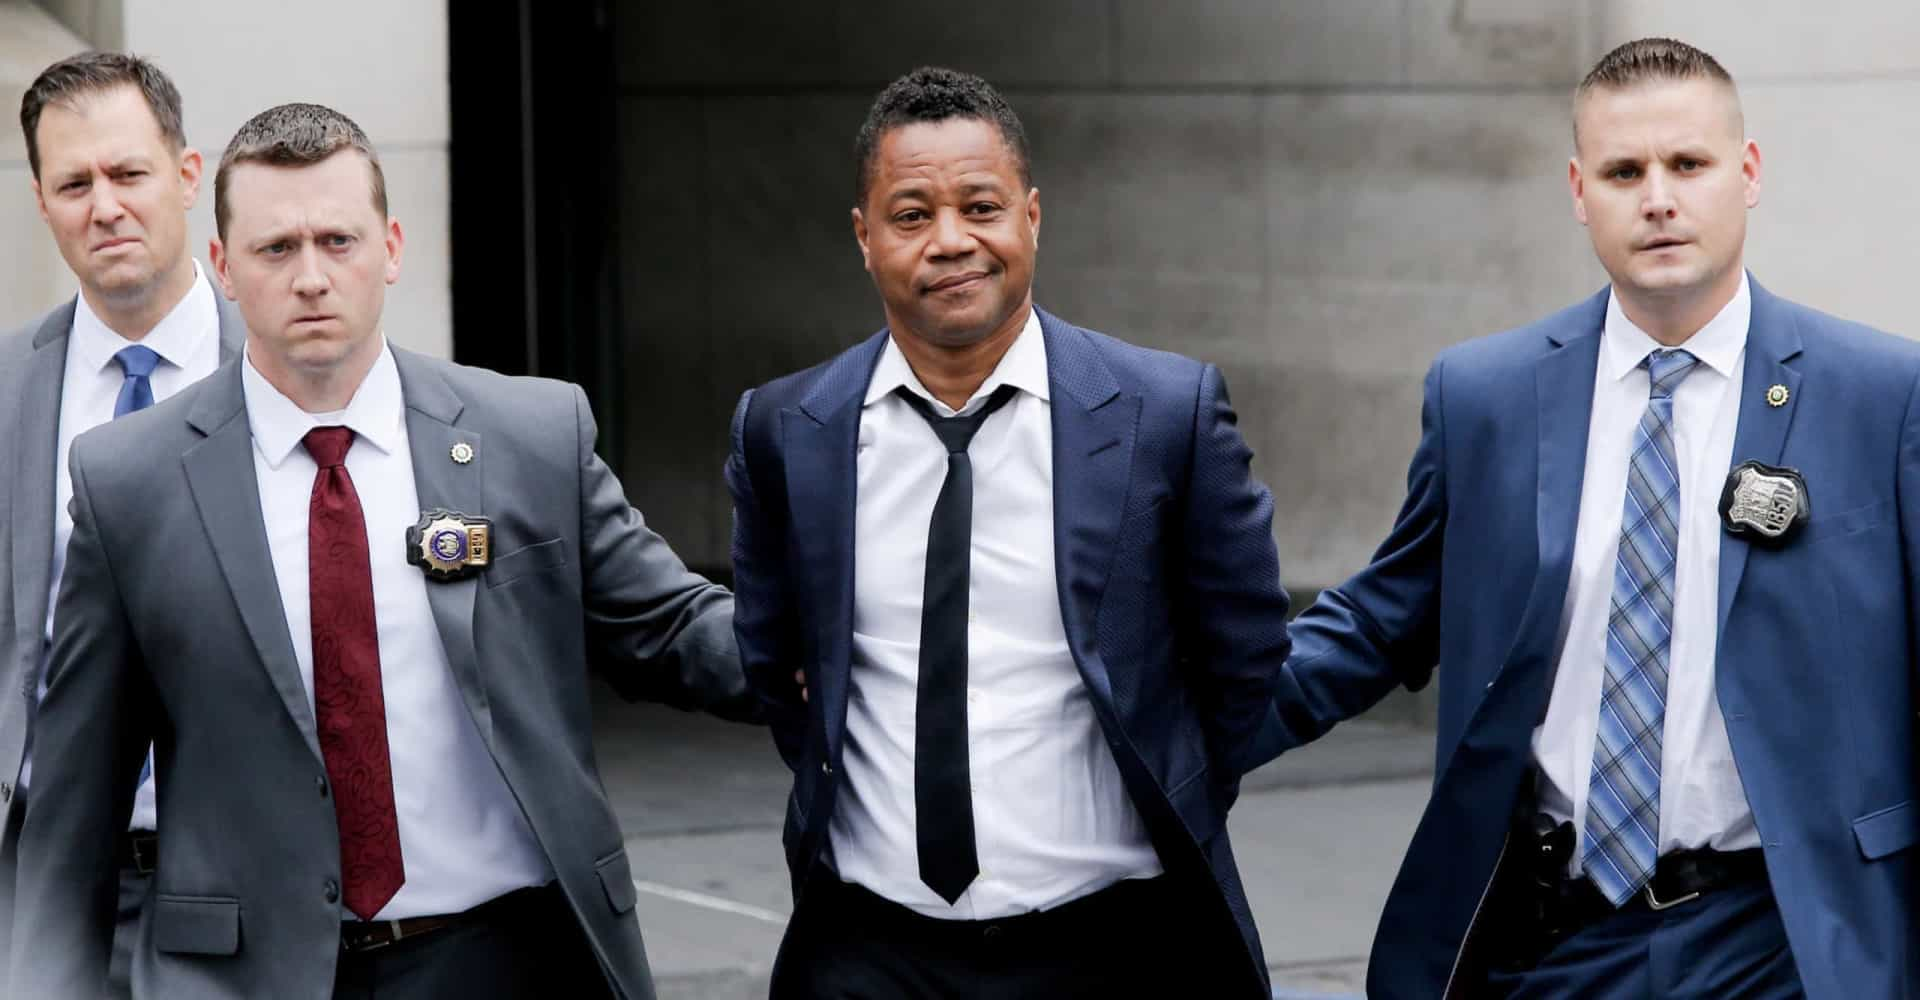 Cuba Gooding Jr. and other stars accused of sexual misconduct